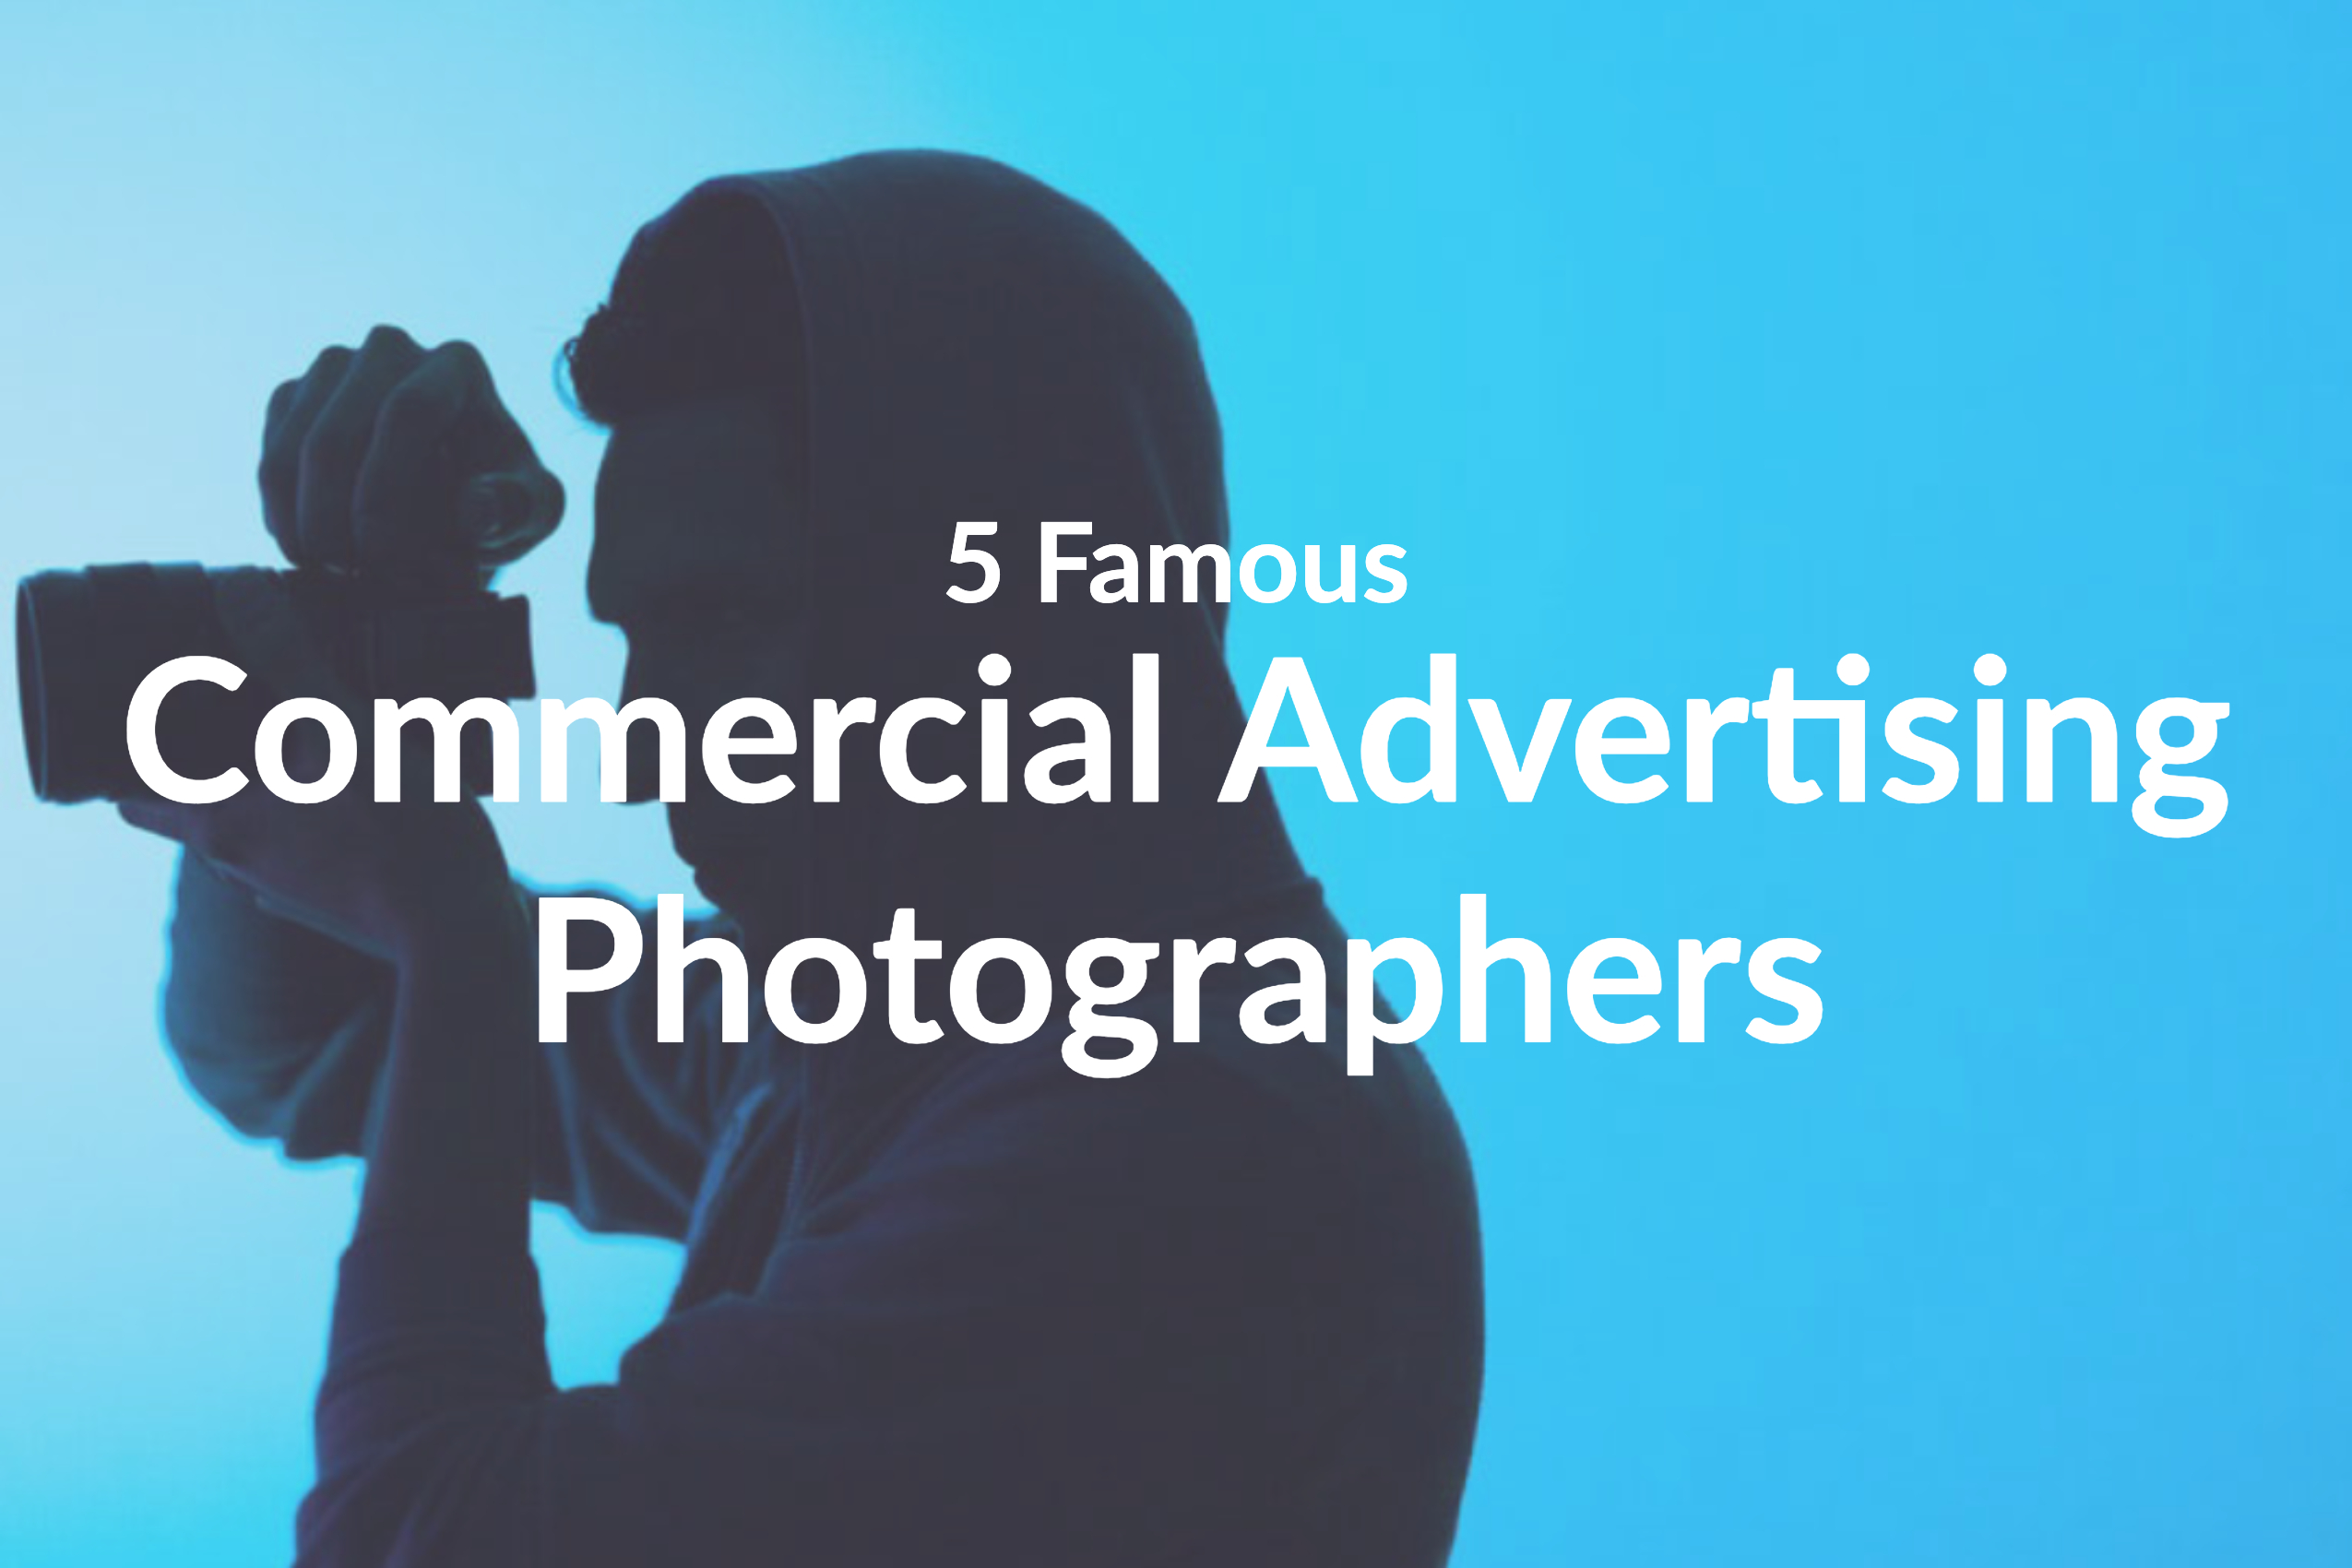 Discover These 5 Famous Commercial Advertising Photographers